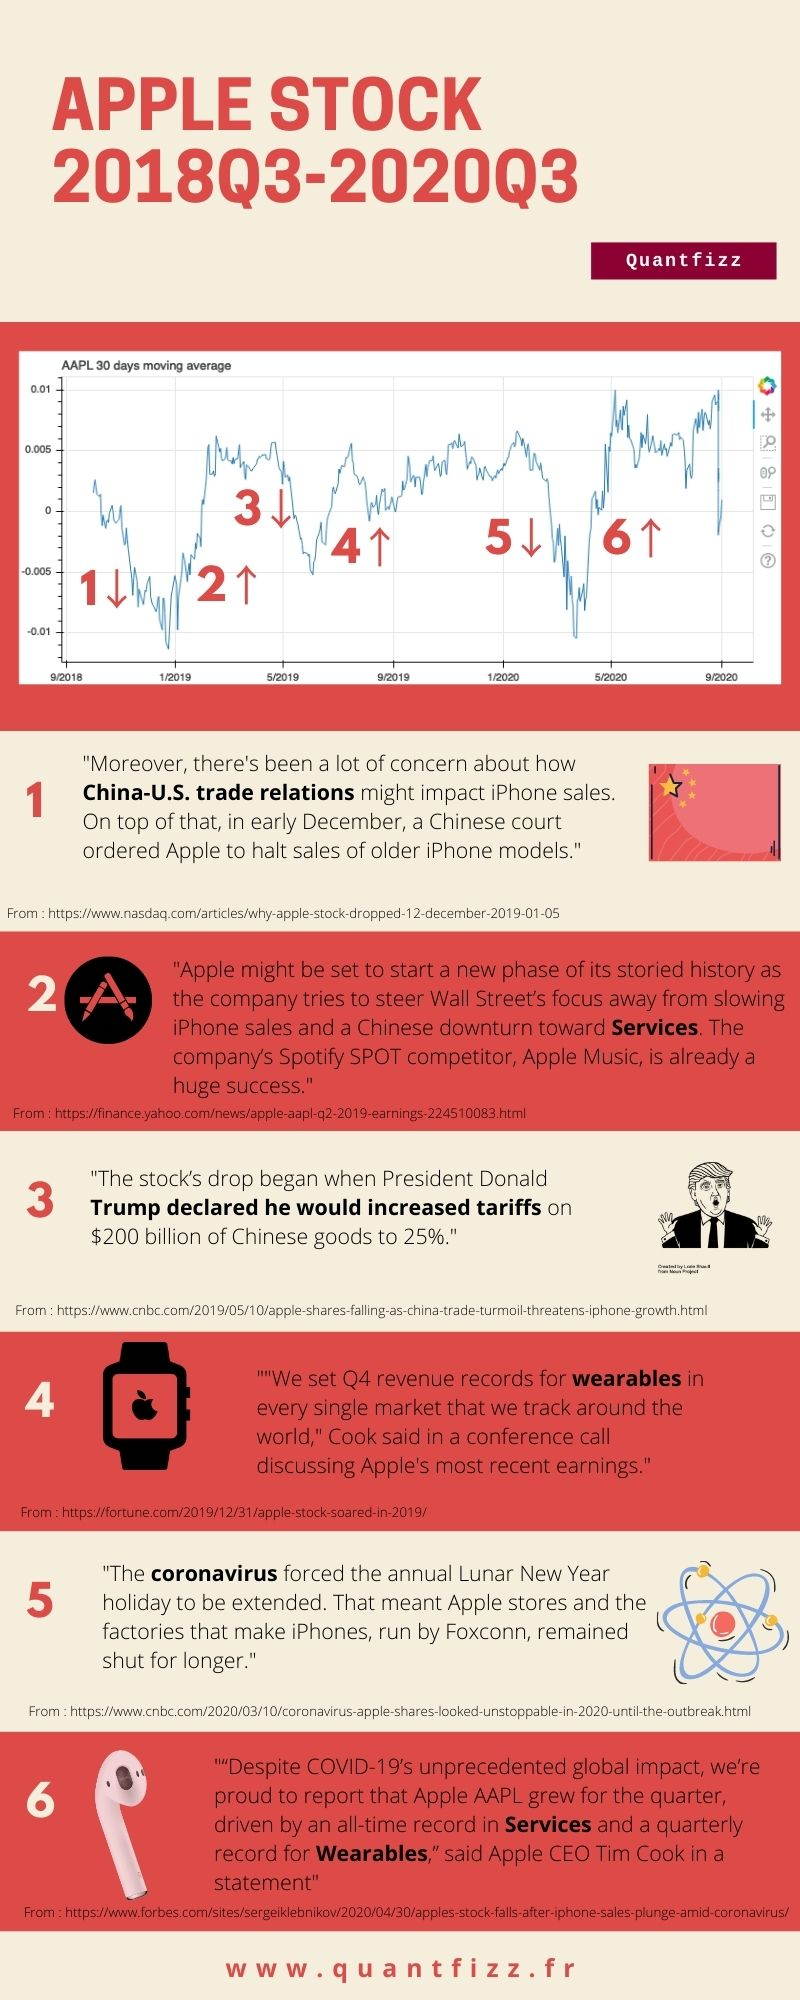 apple stock 2018Q3 to 2019Q3